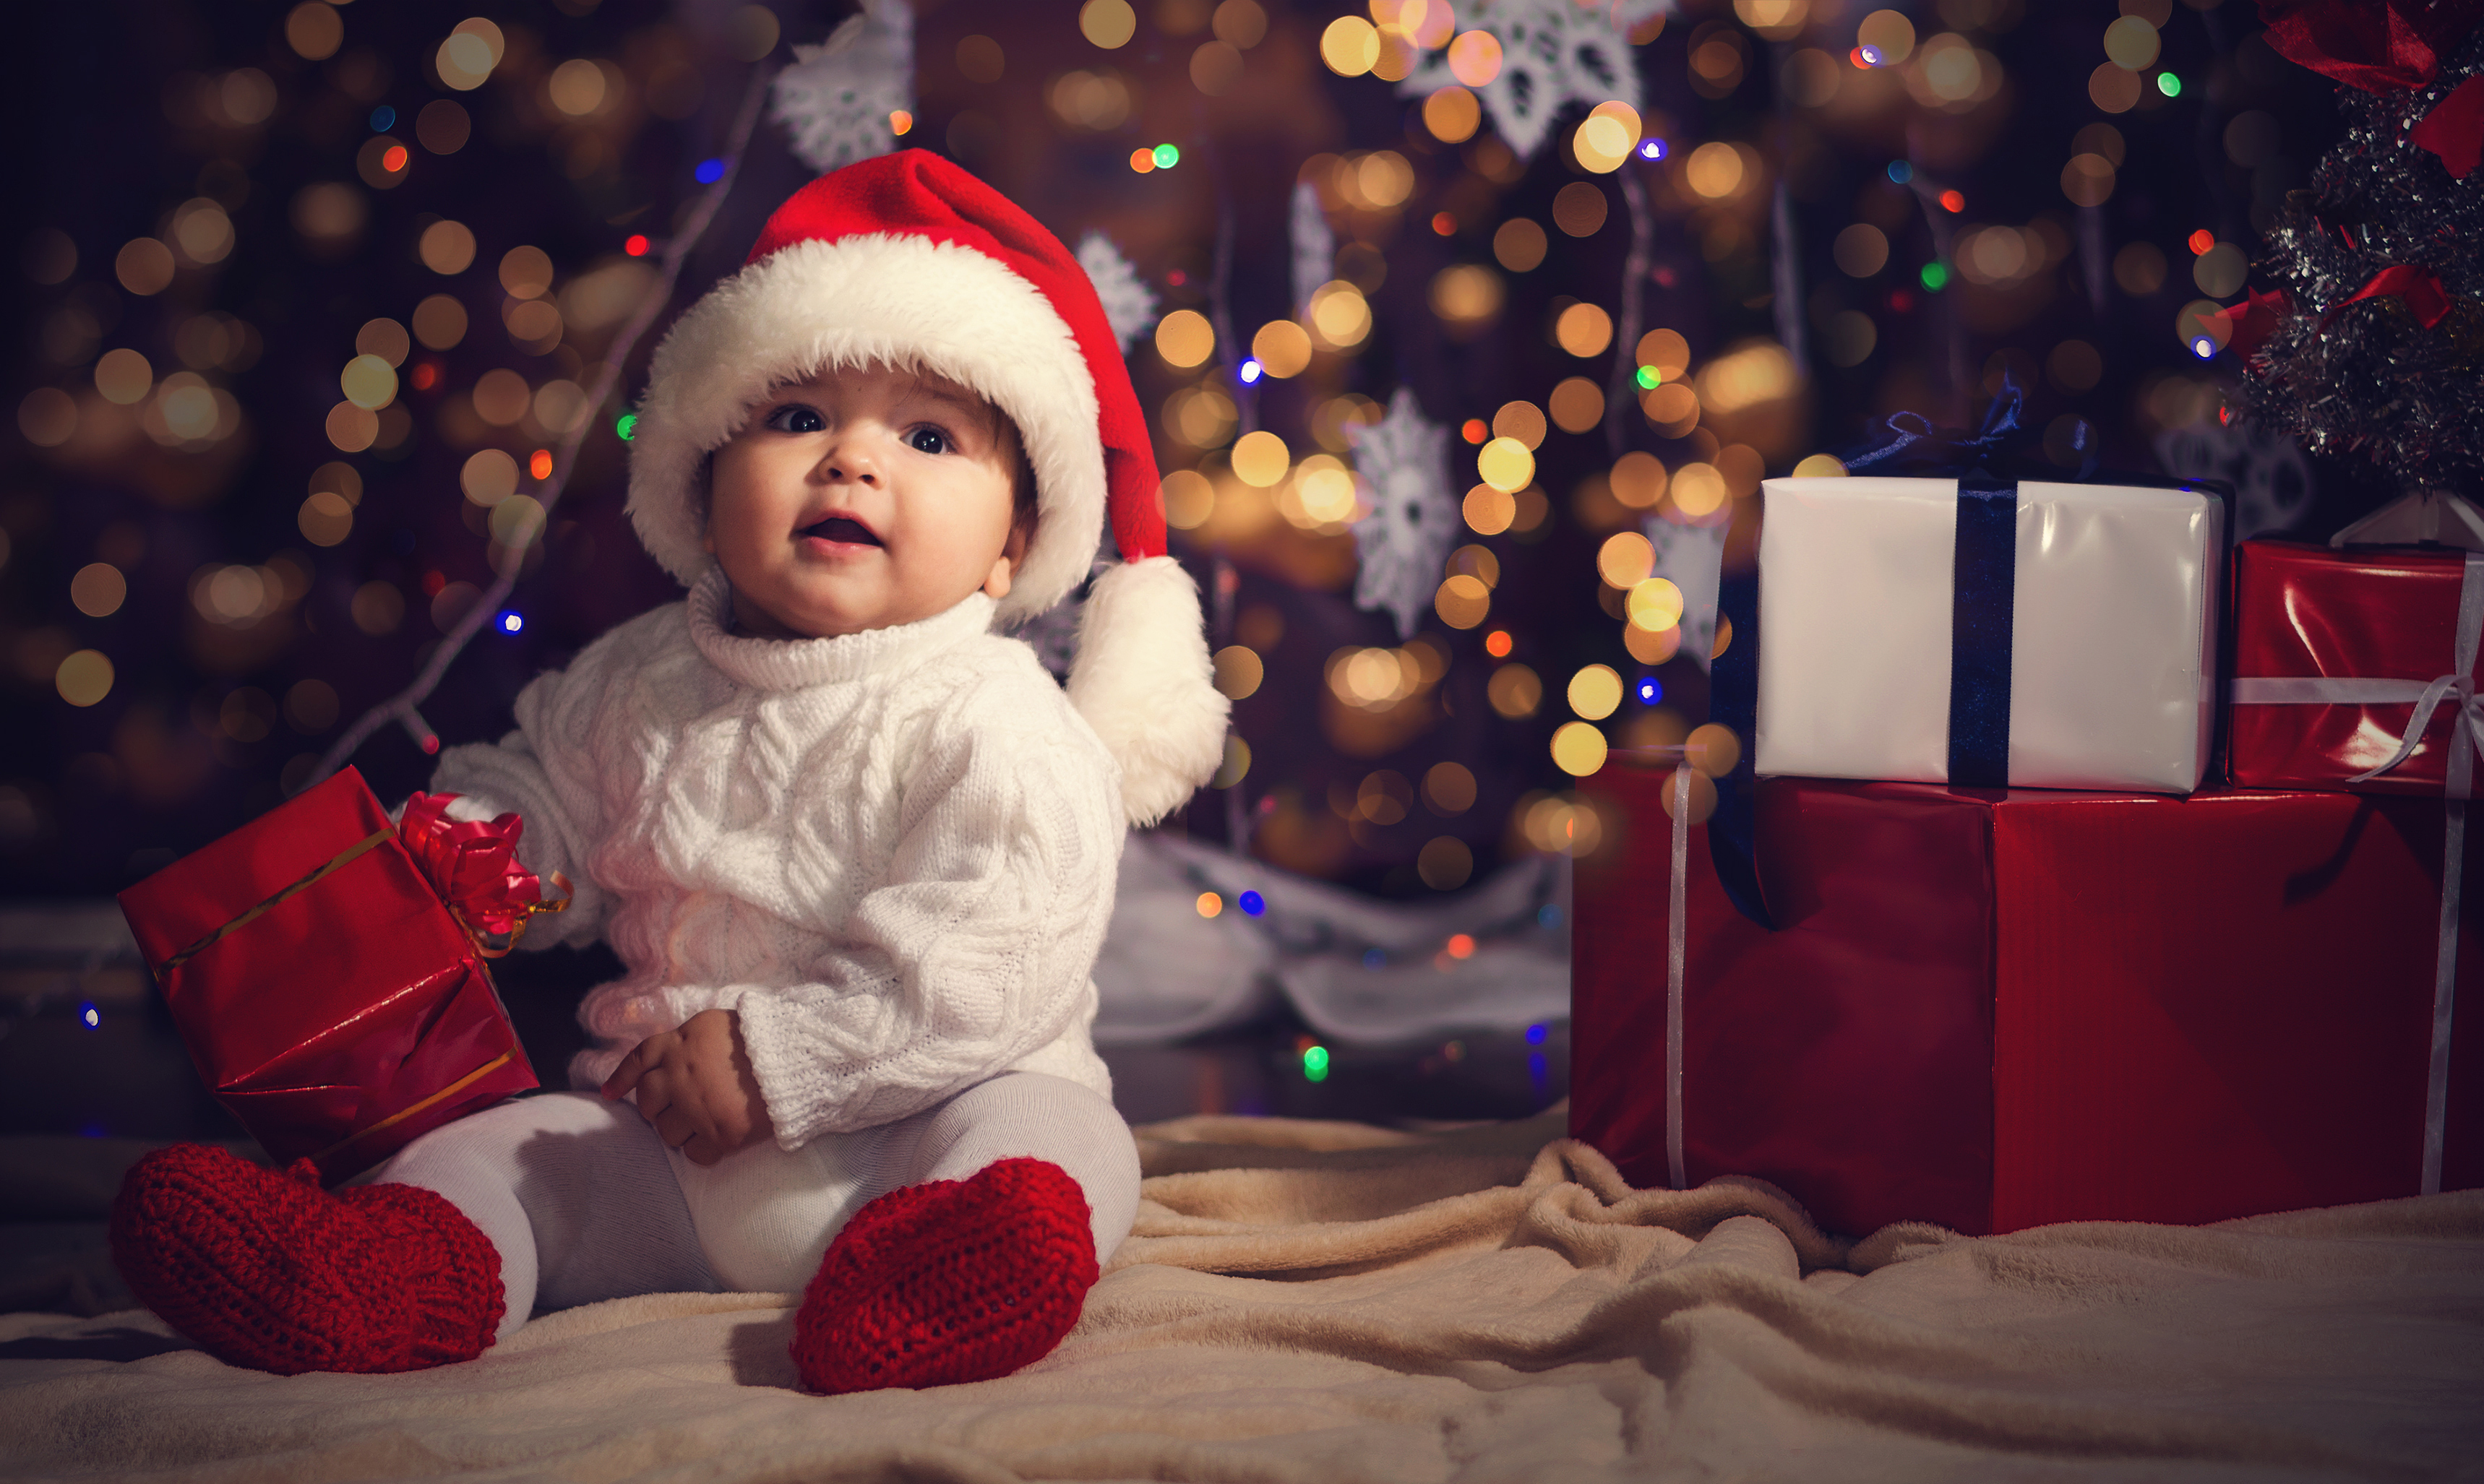 Here are some of our favorite gifts for Baby's first Christmas!